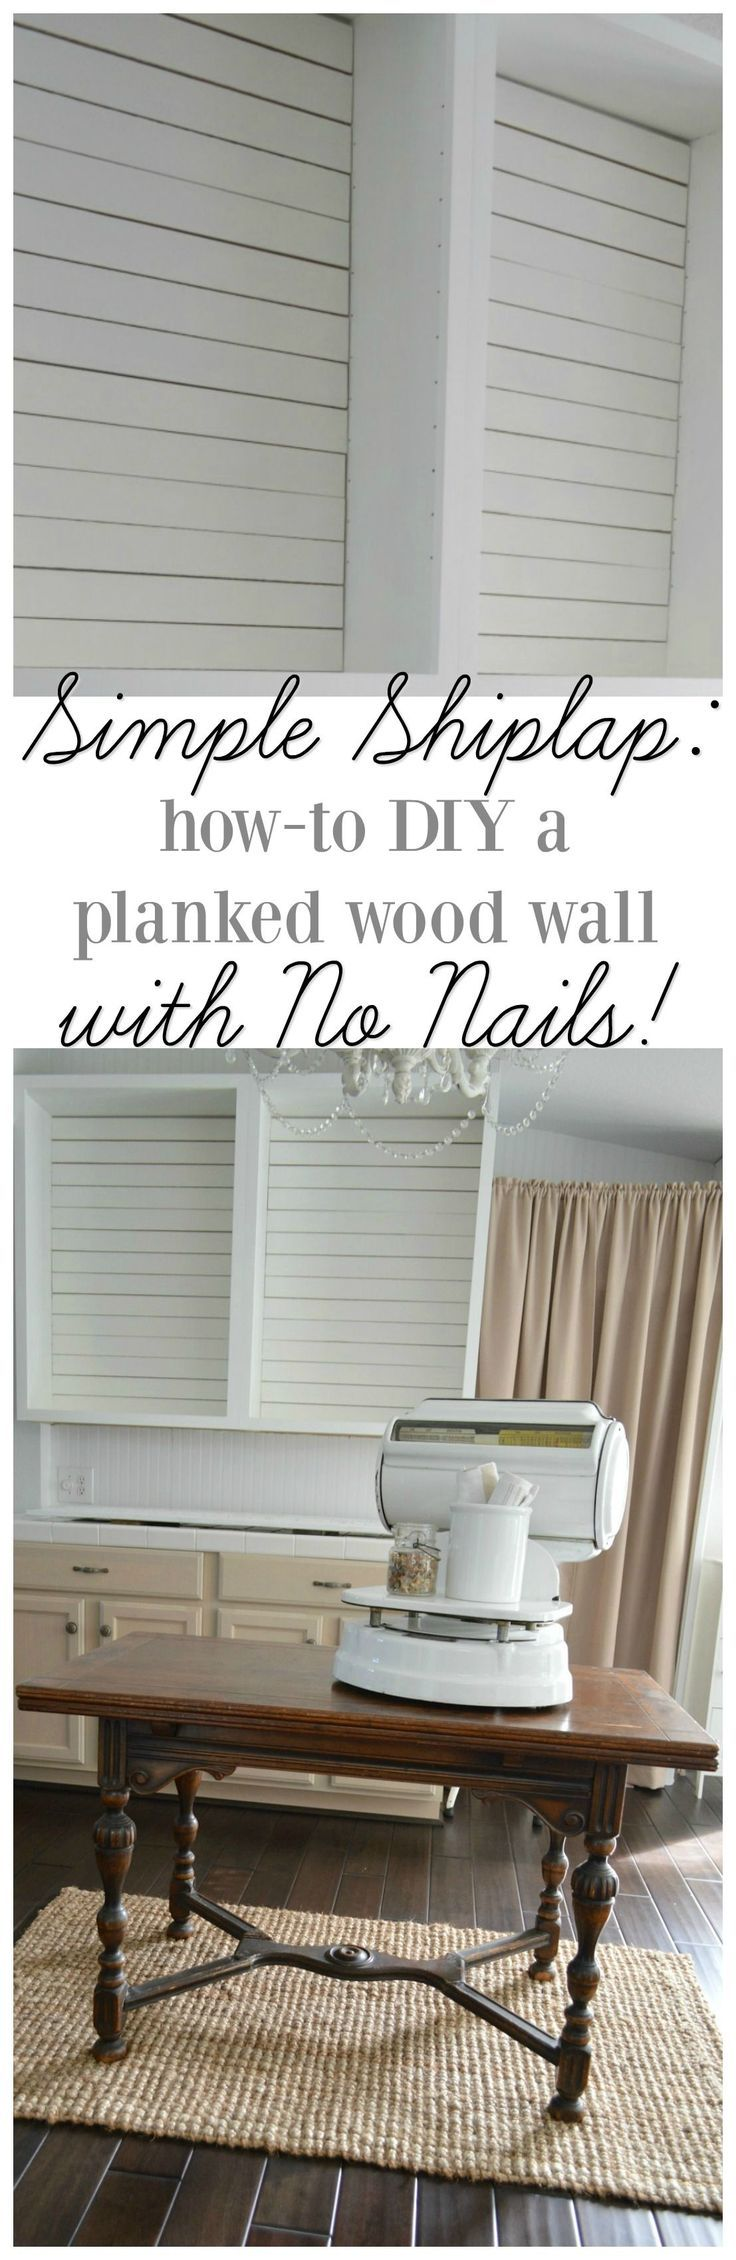 Simple Shiplap: How To DIY a Planked Wall with No Nails